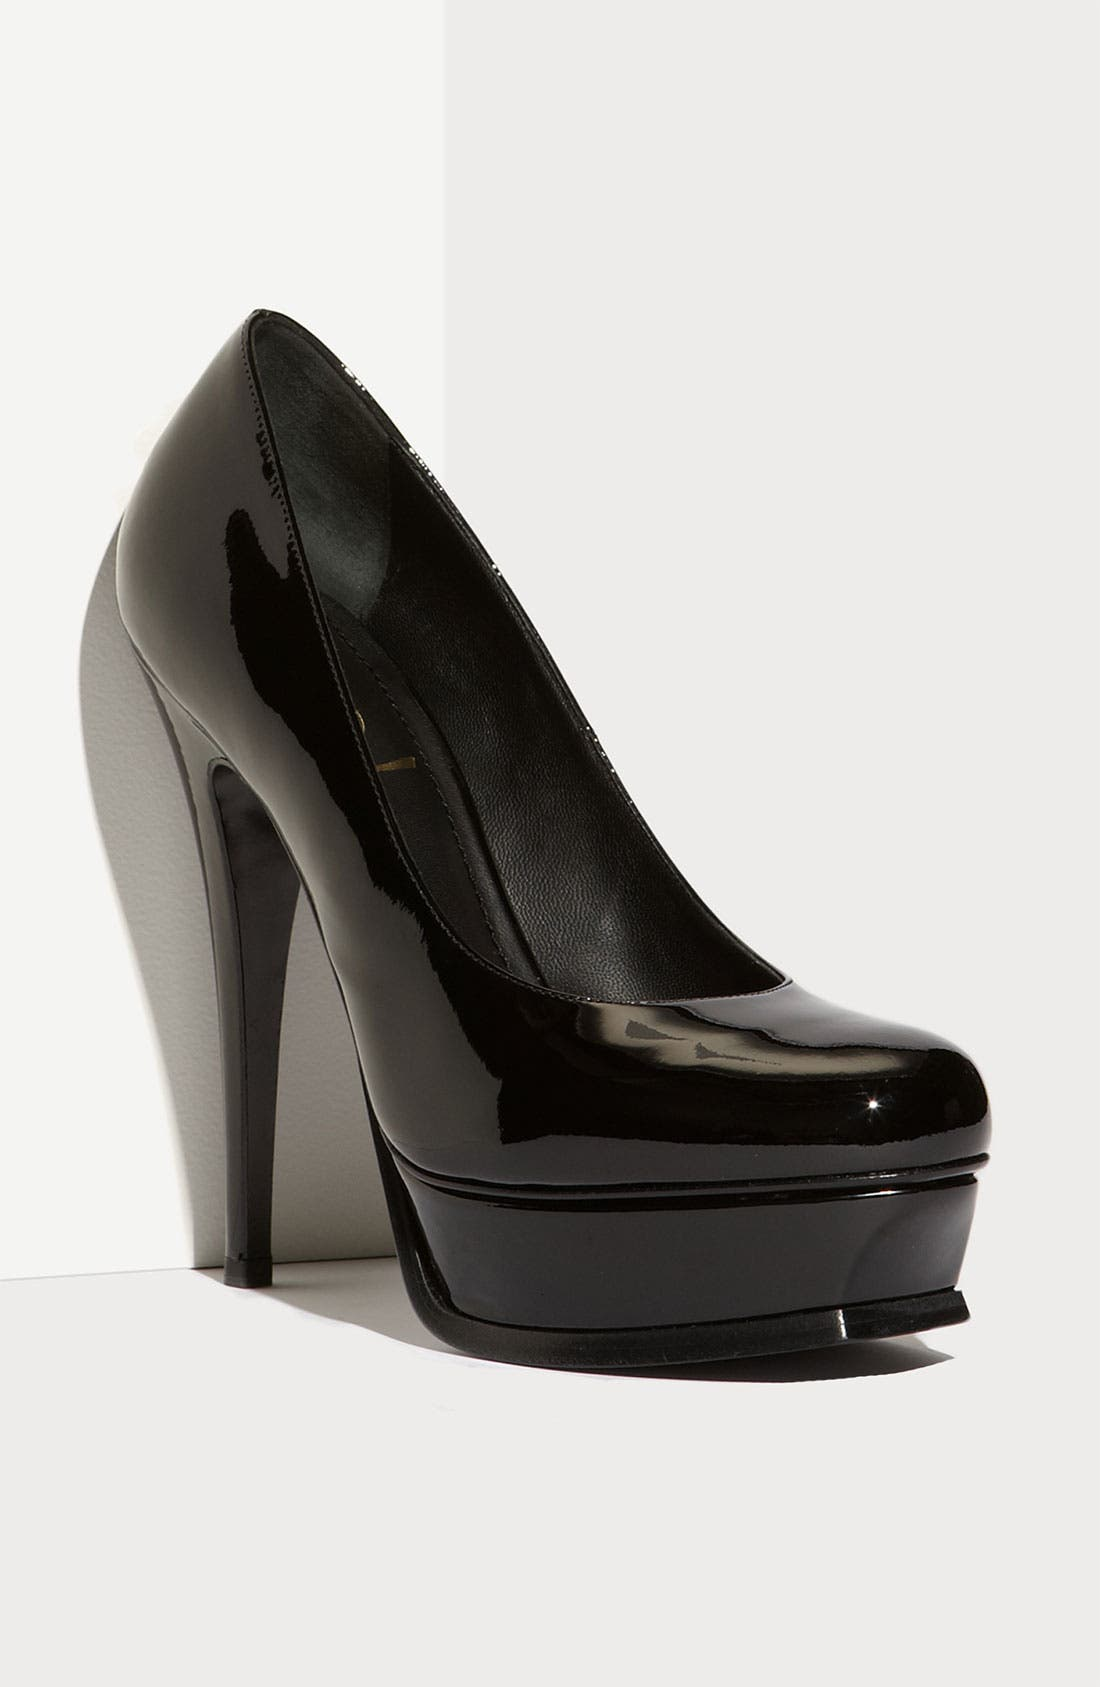 SAINT LAURENT Yves Saint Laurent 'Tribute' Pump, Main, color, 001